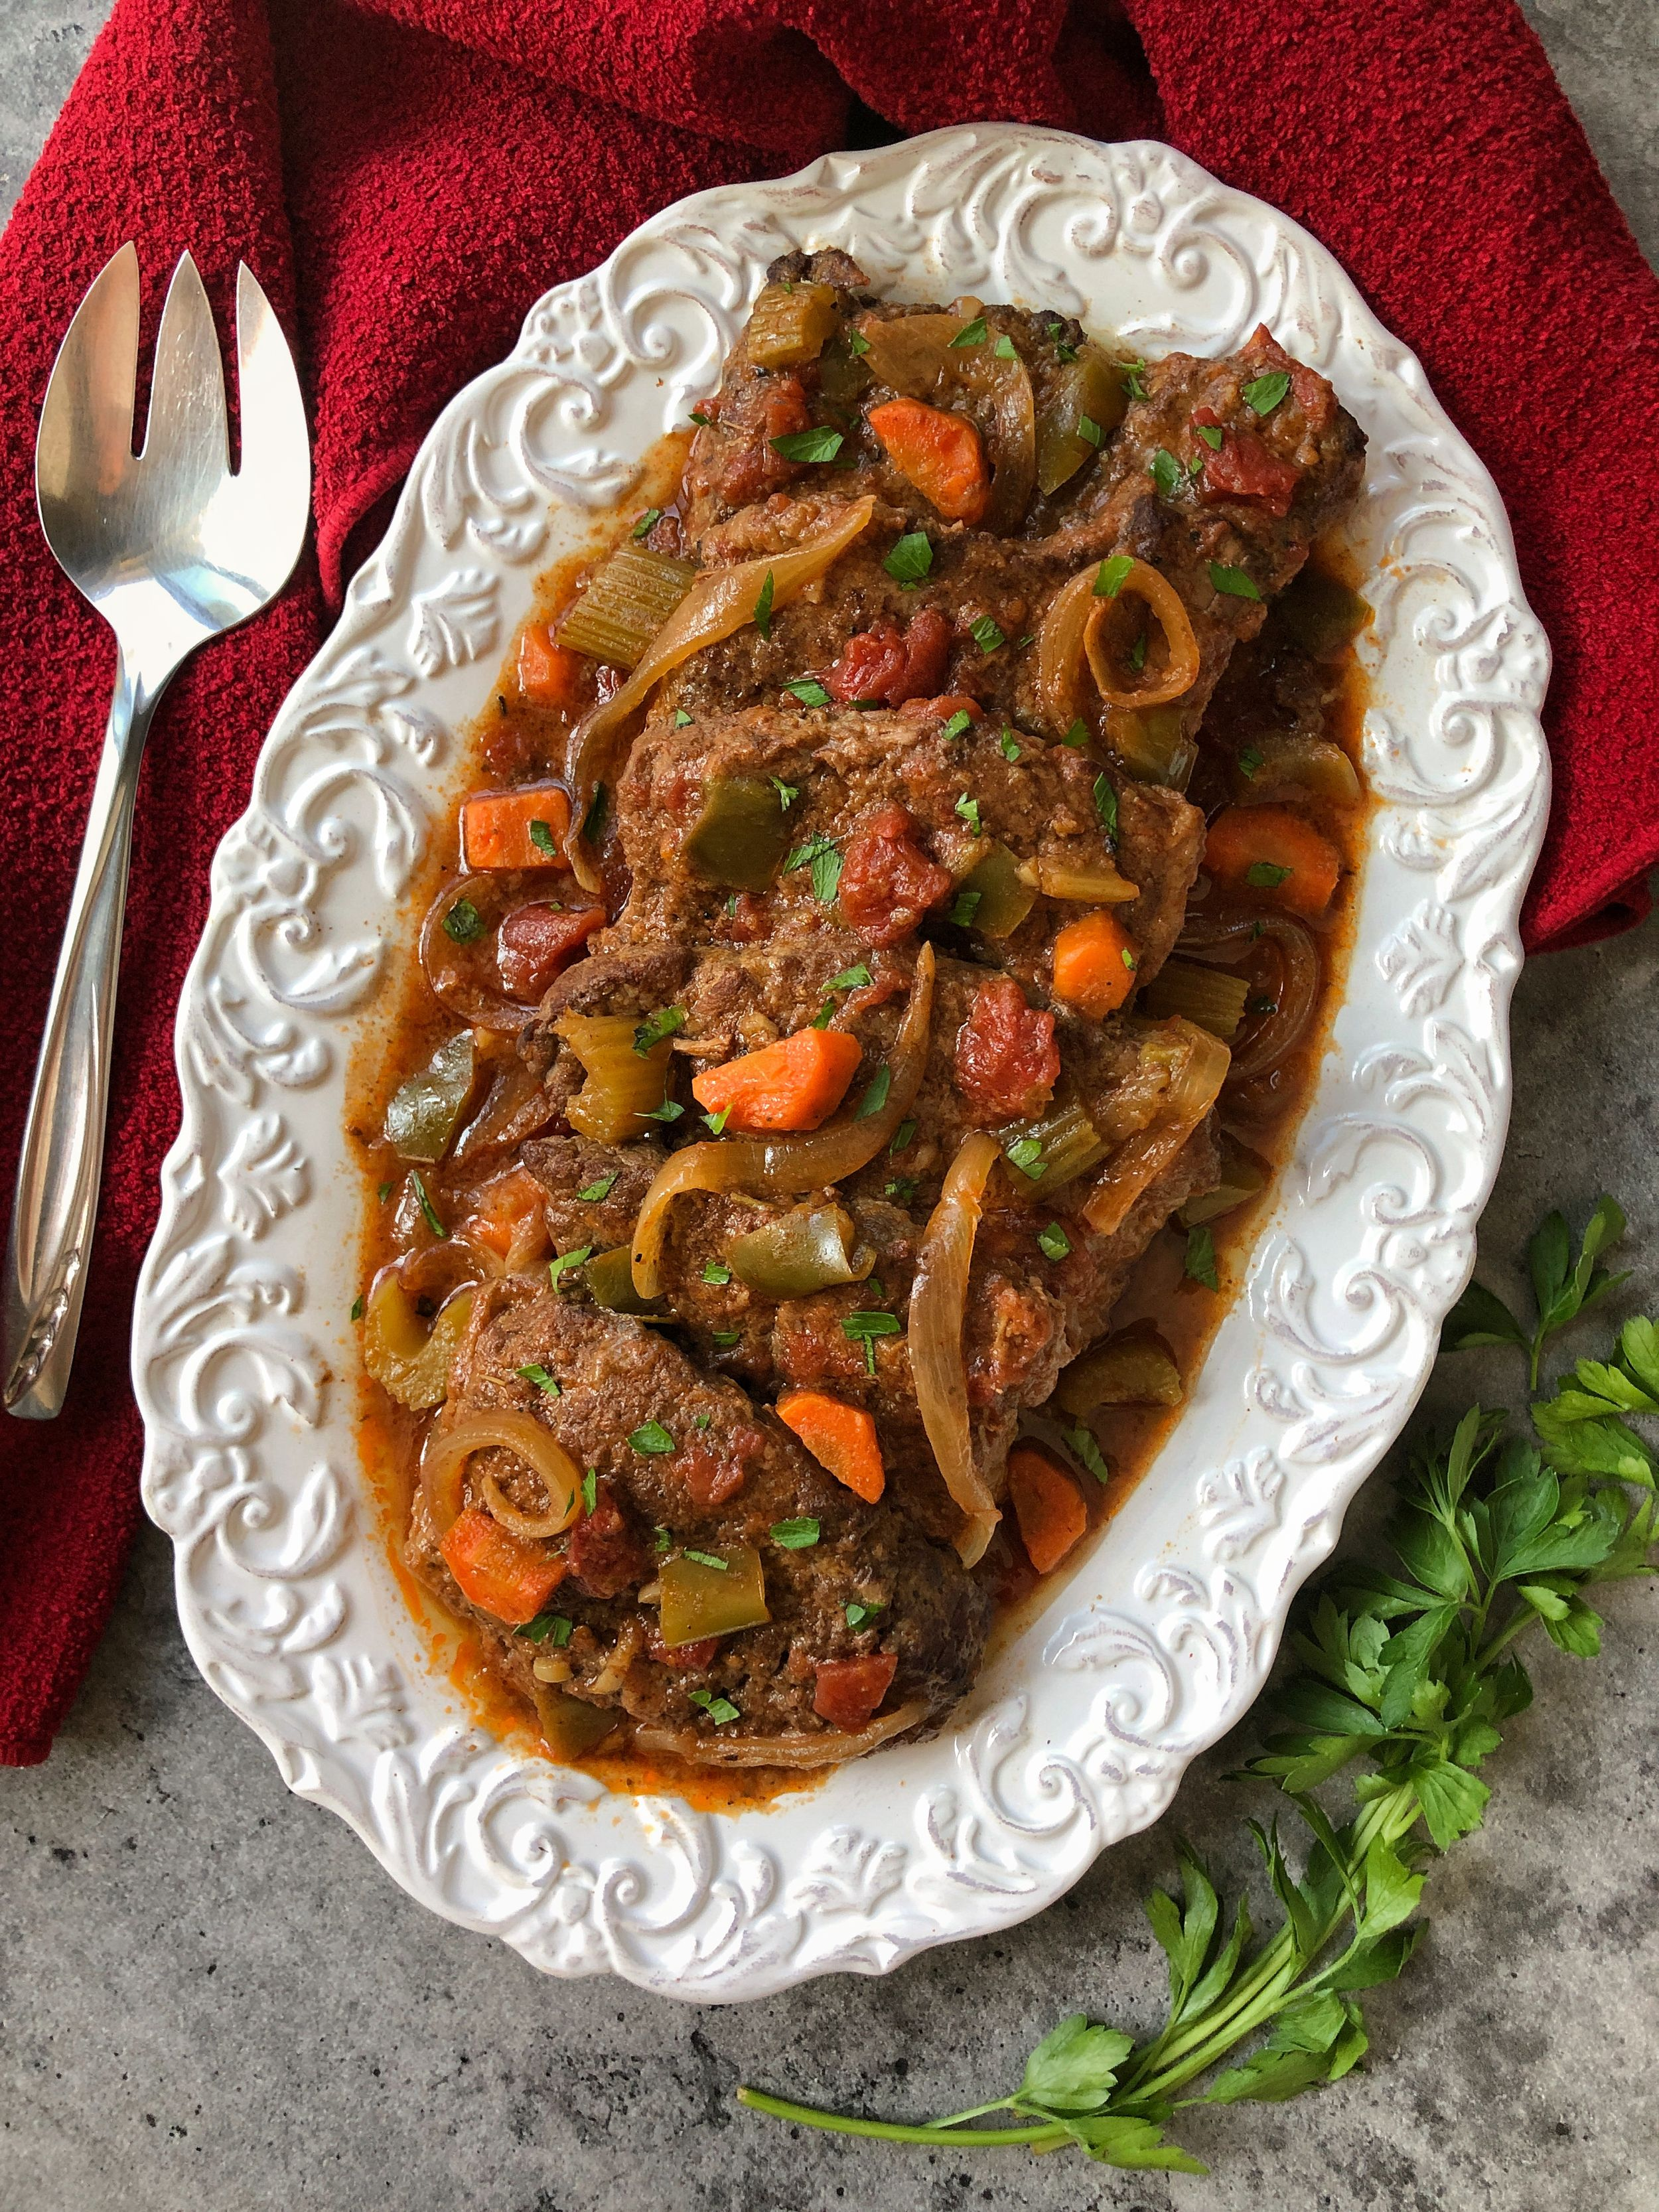 Dorothy Dean Presents Swiss Steak Is A Comforting And Hearty Meal The Spokesman Review